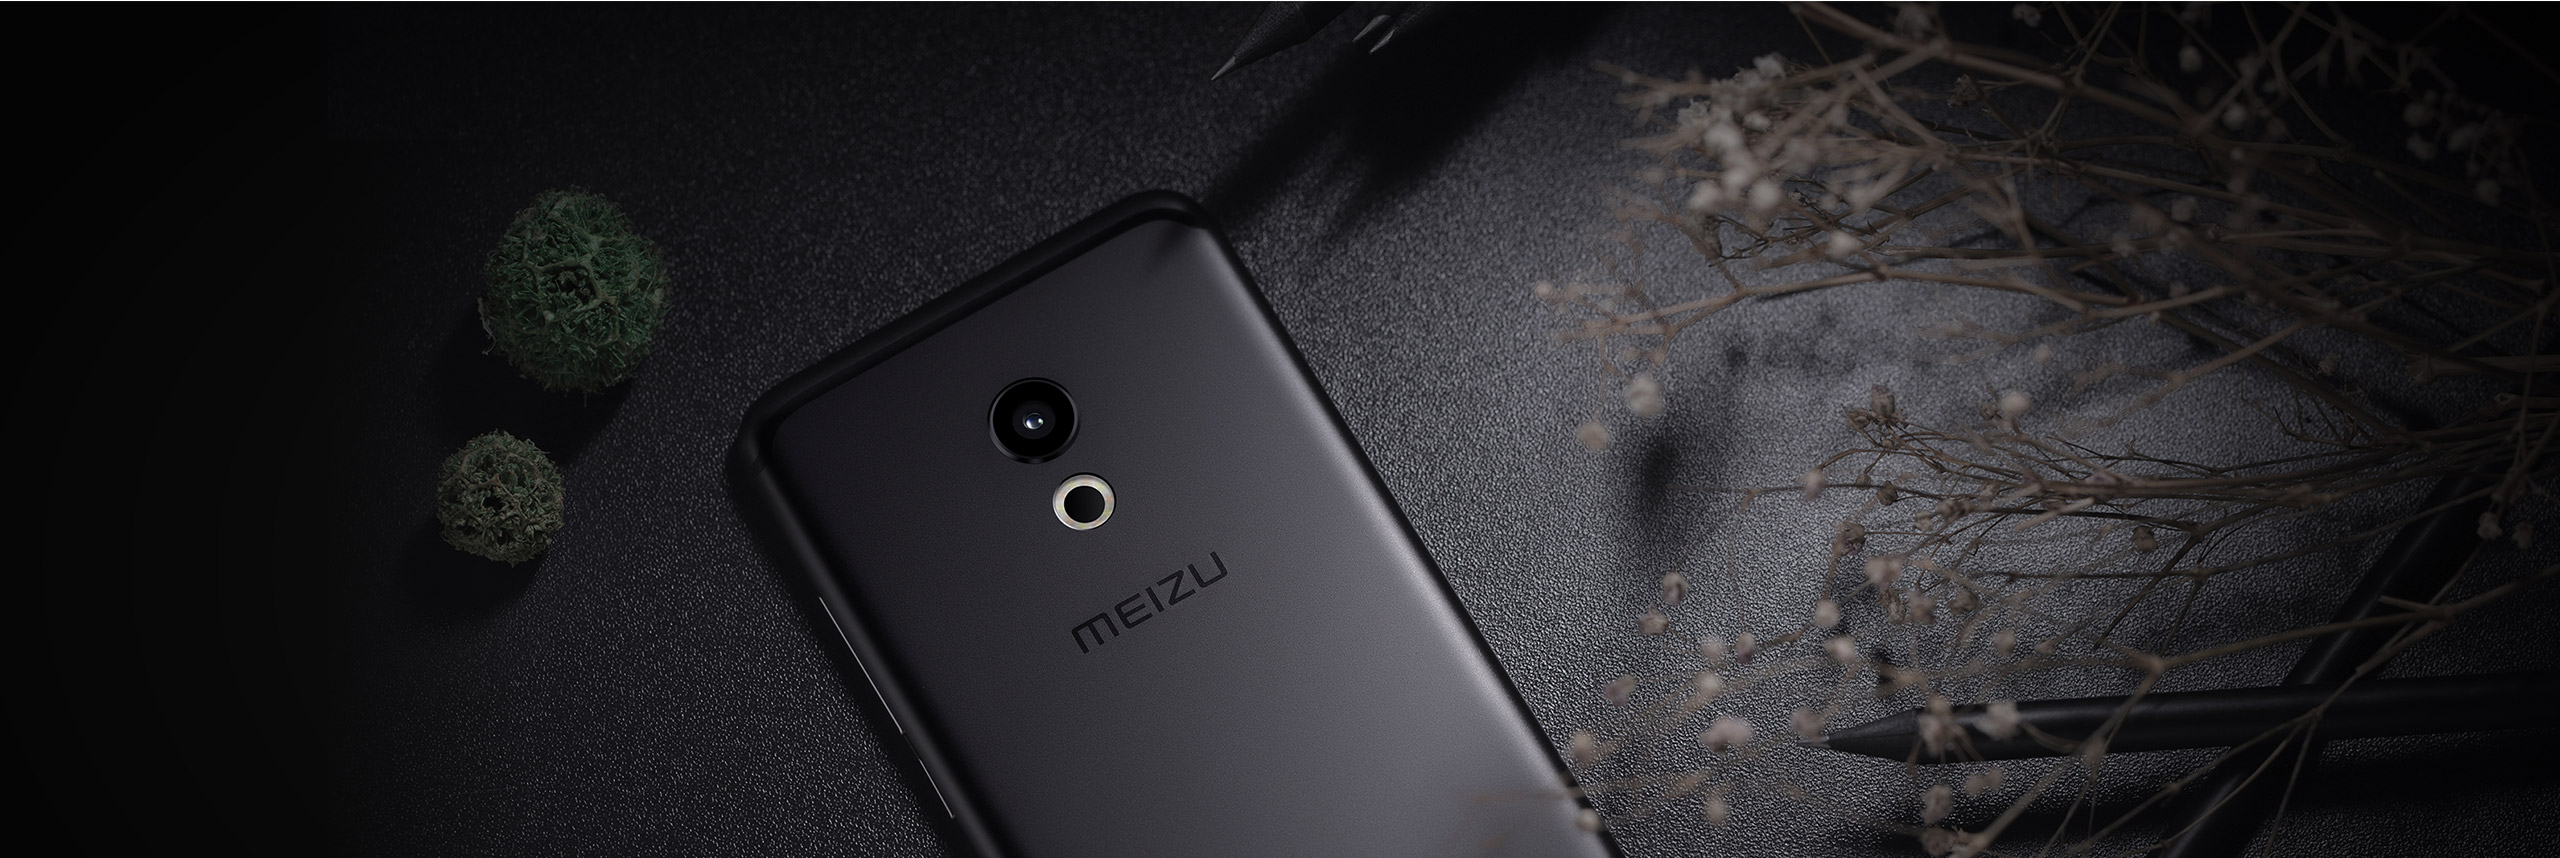 Meizu Pro 6: 7 details that you definitely missed